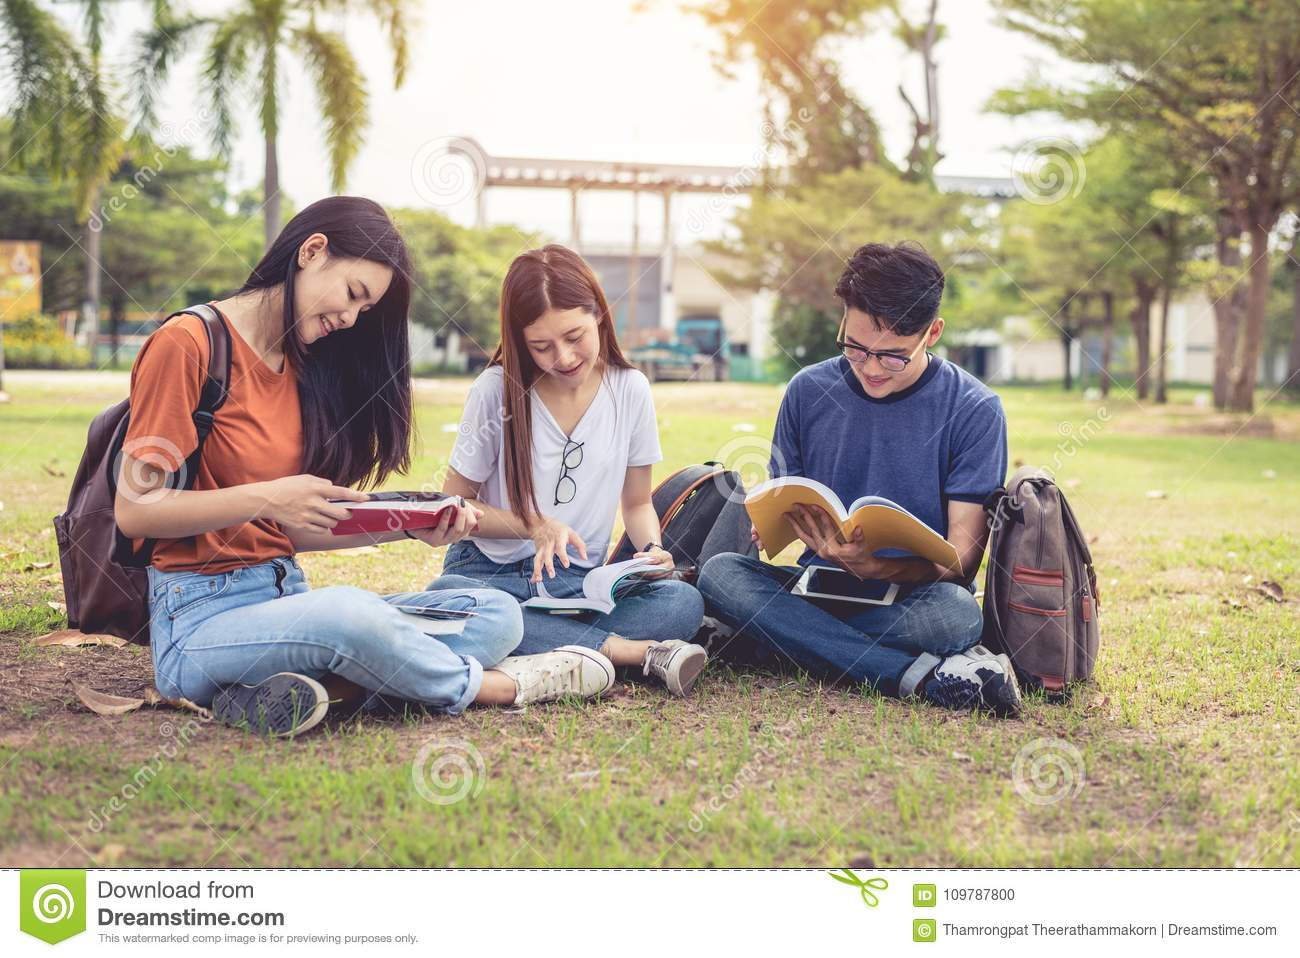 Group of Asian college student reading books and tutoring special class for exam on grass field at outdoors. Happiness and